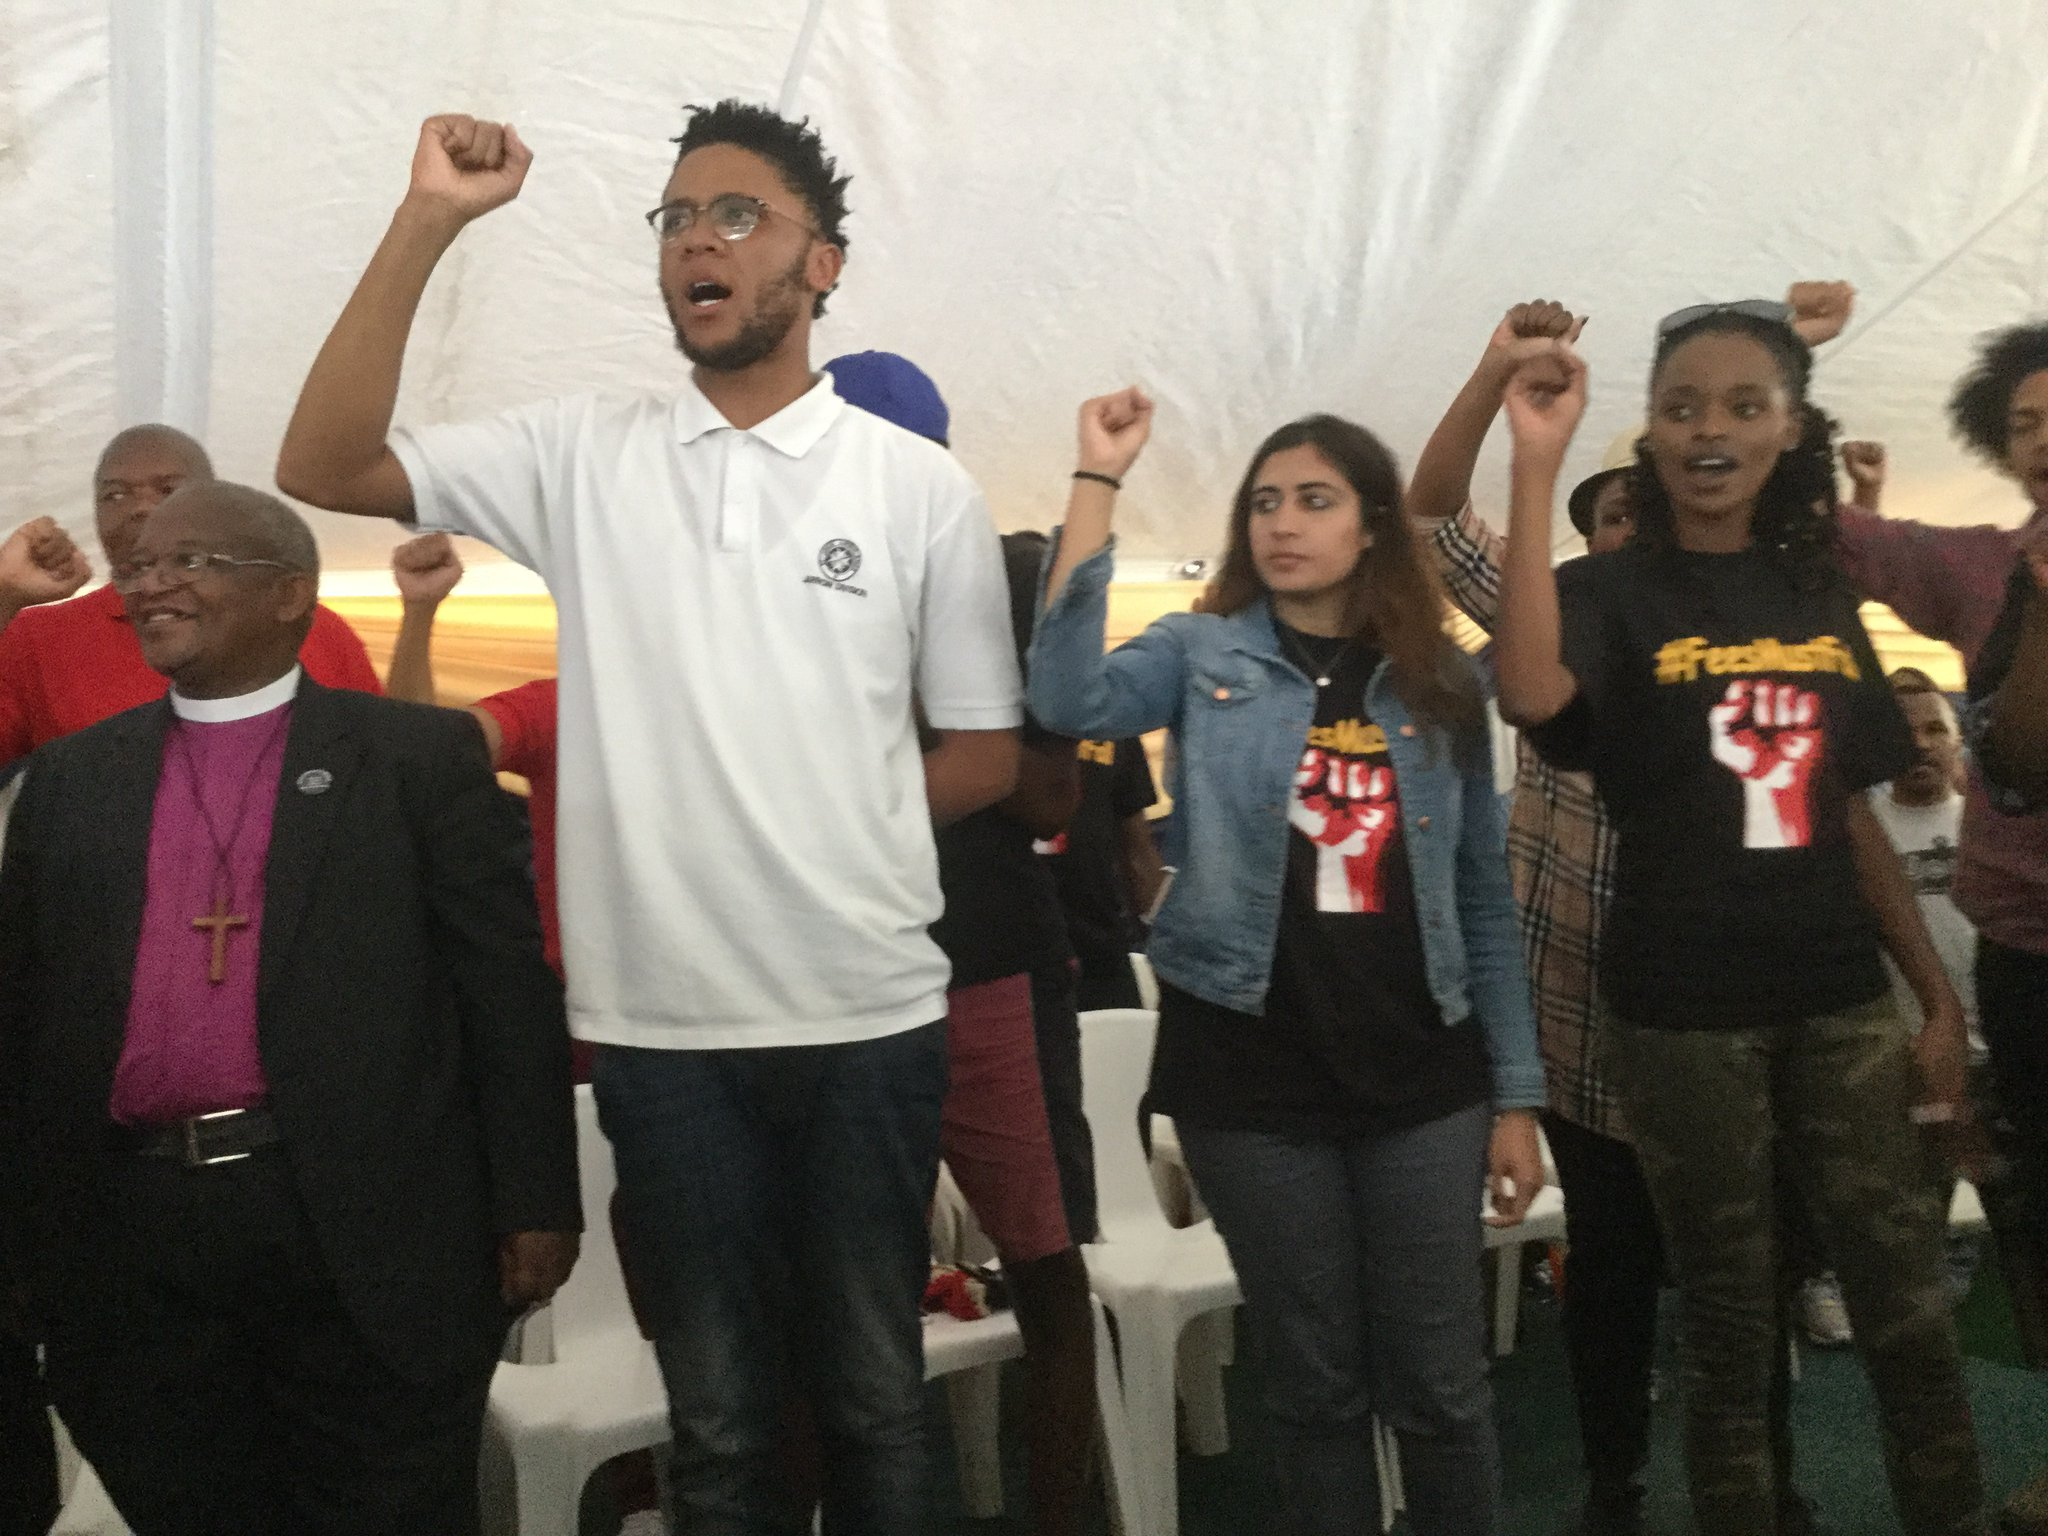 Wits students remain resolute